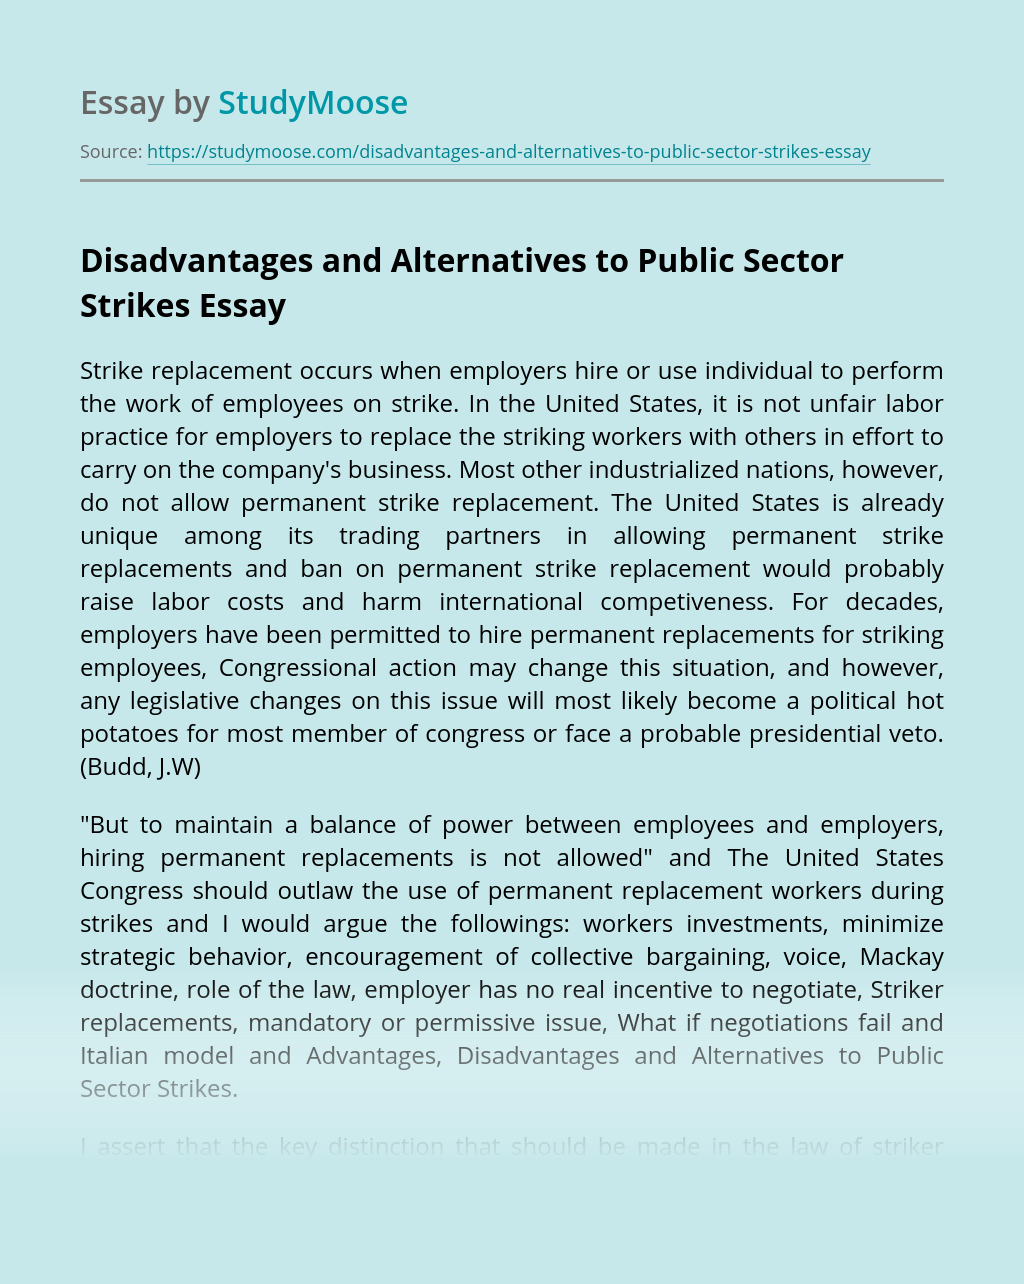 Disadvantages and Alternatives to Public Sector Strikes